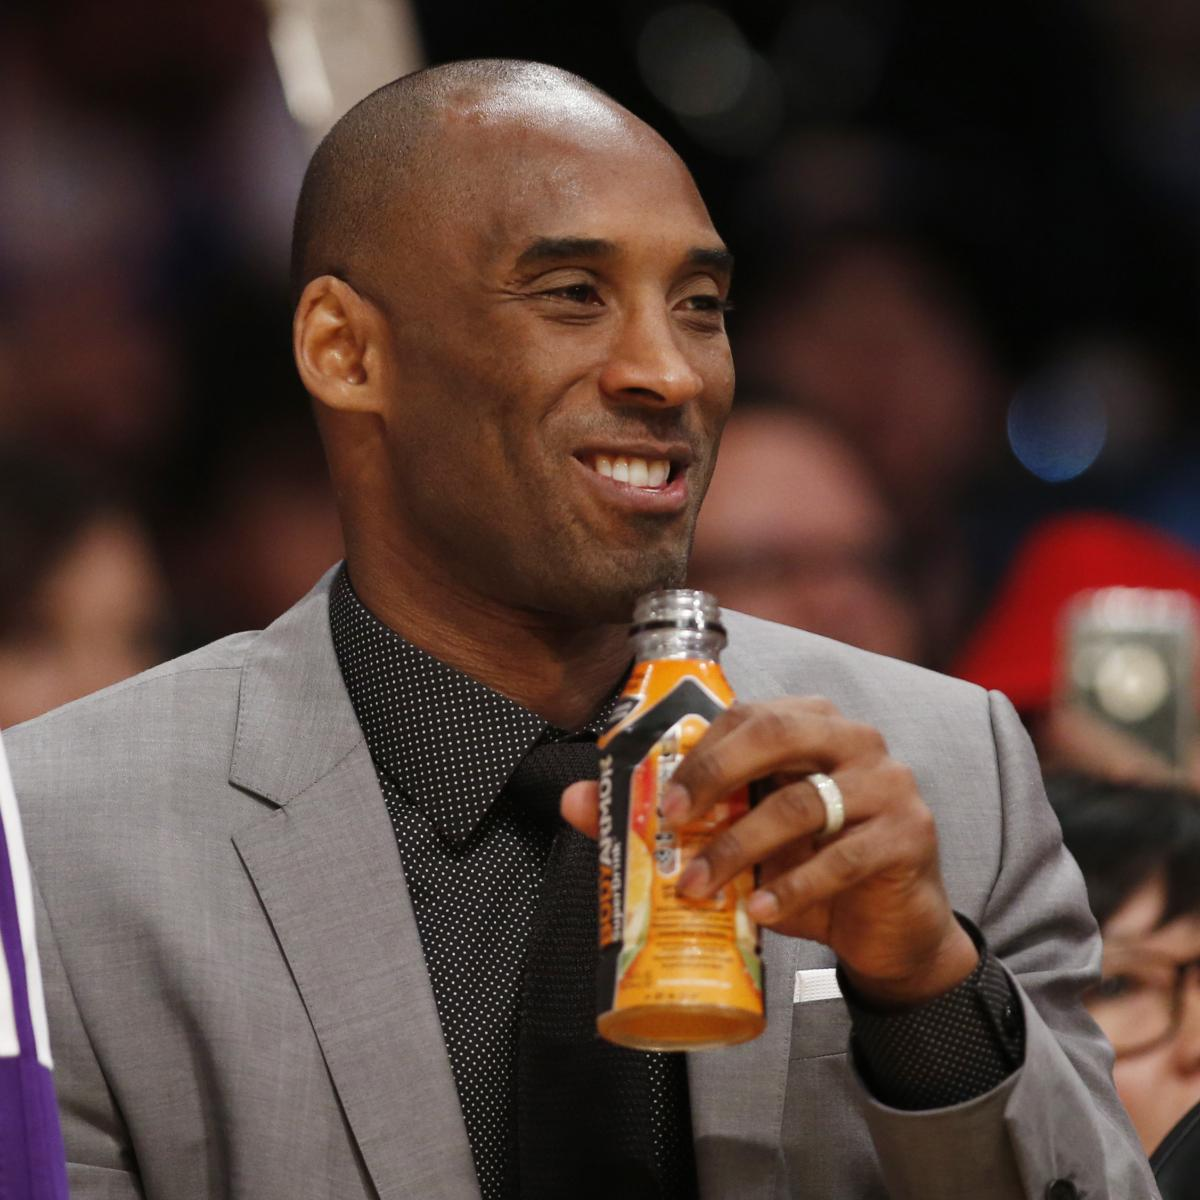 Report: Kobe Bryant's $6M Investment in BodyArmor Sports Drink Now Worth $200M